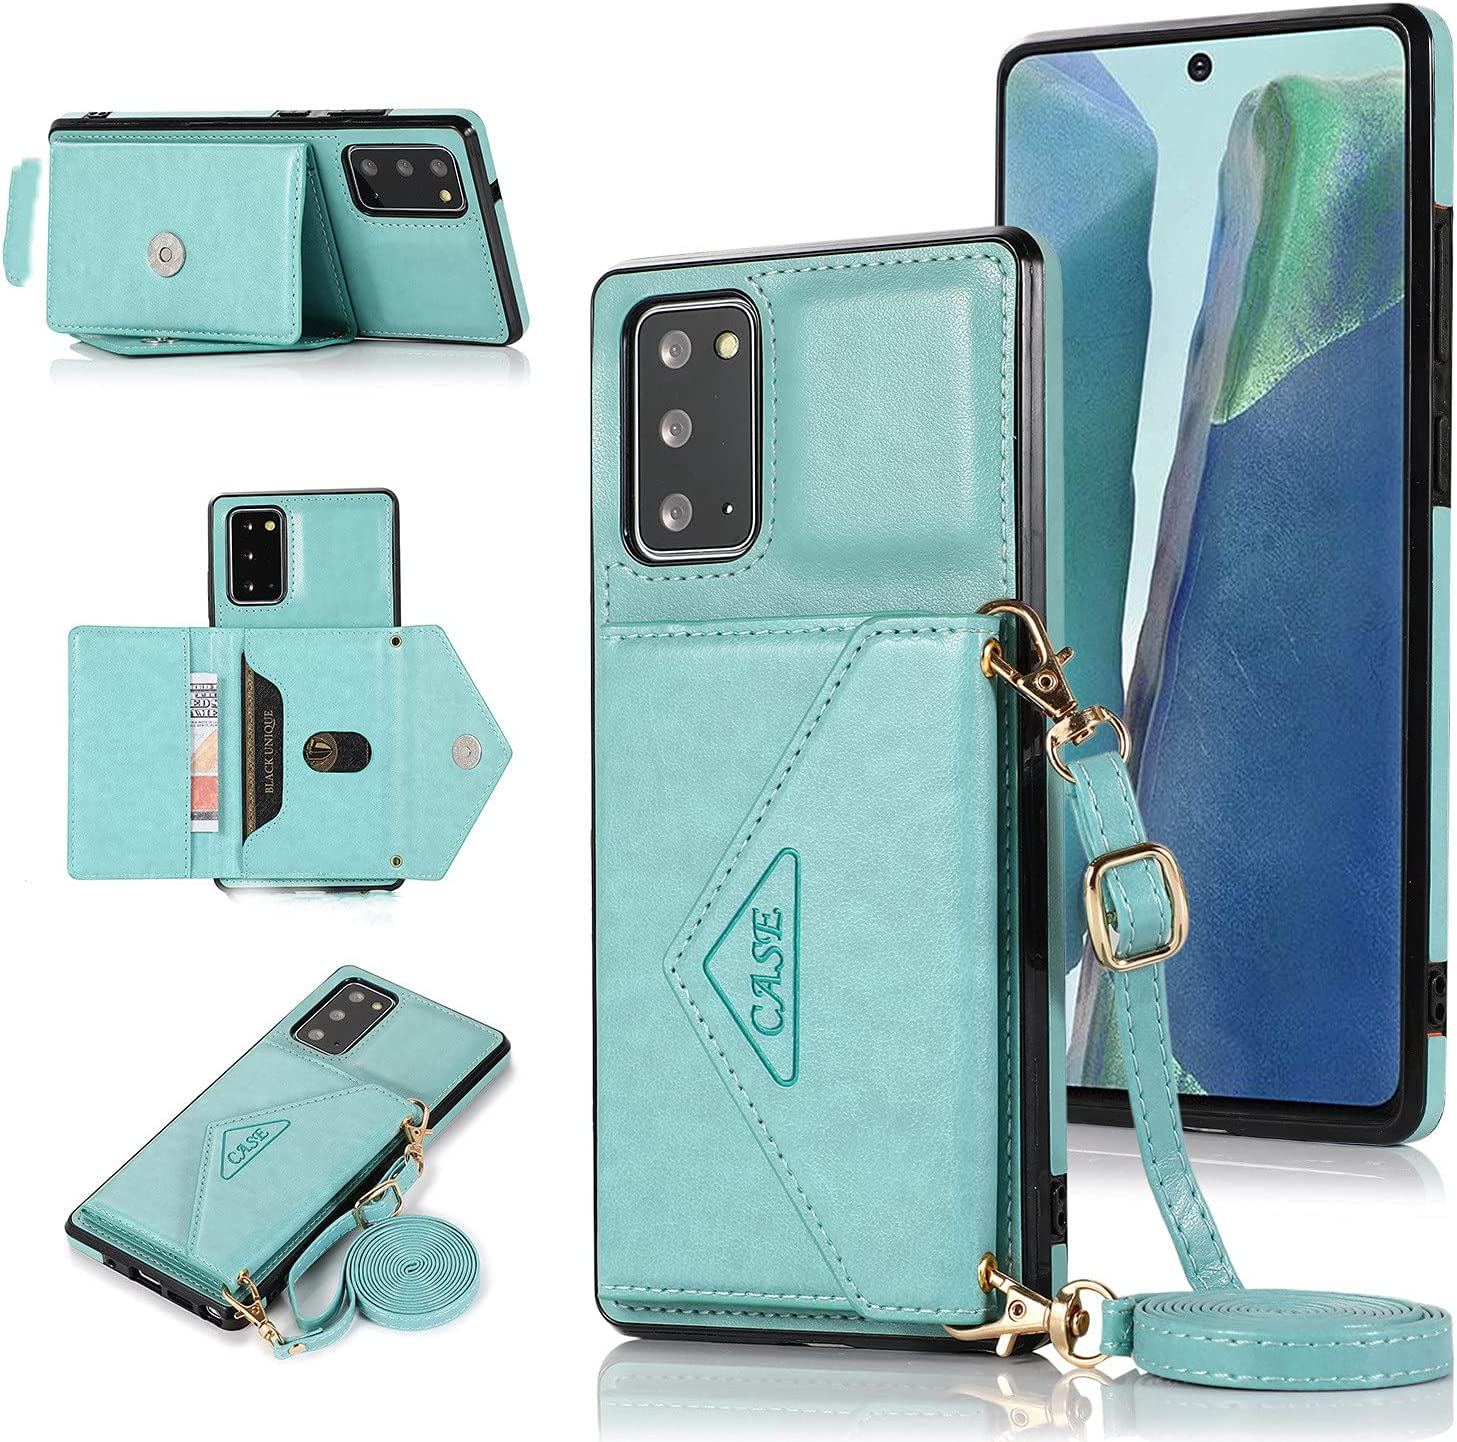 ISYSUII Crossbody Case for Samsung Galaxy A31 Wallet Case with Card Holder Kickstand Detachable Lanyard Strap Leather Shockproof Protective Flip Cover Magnetic Handbag Cover,Green